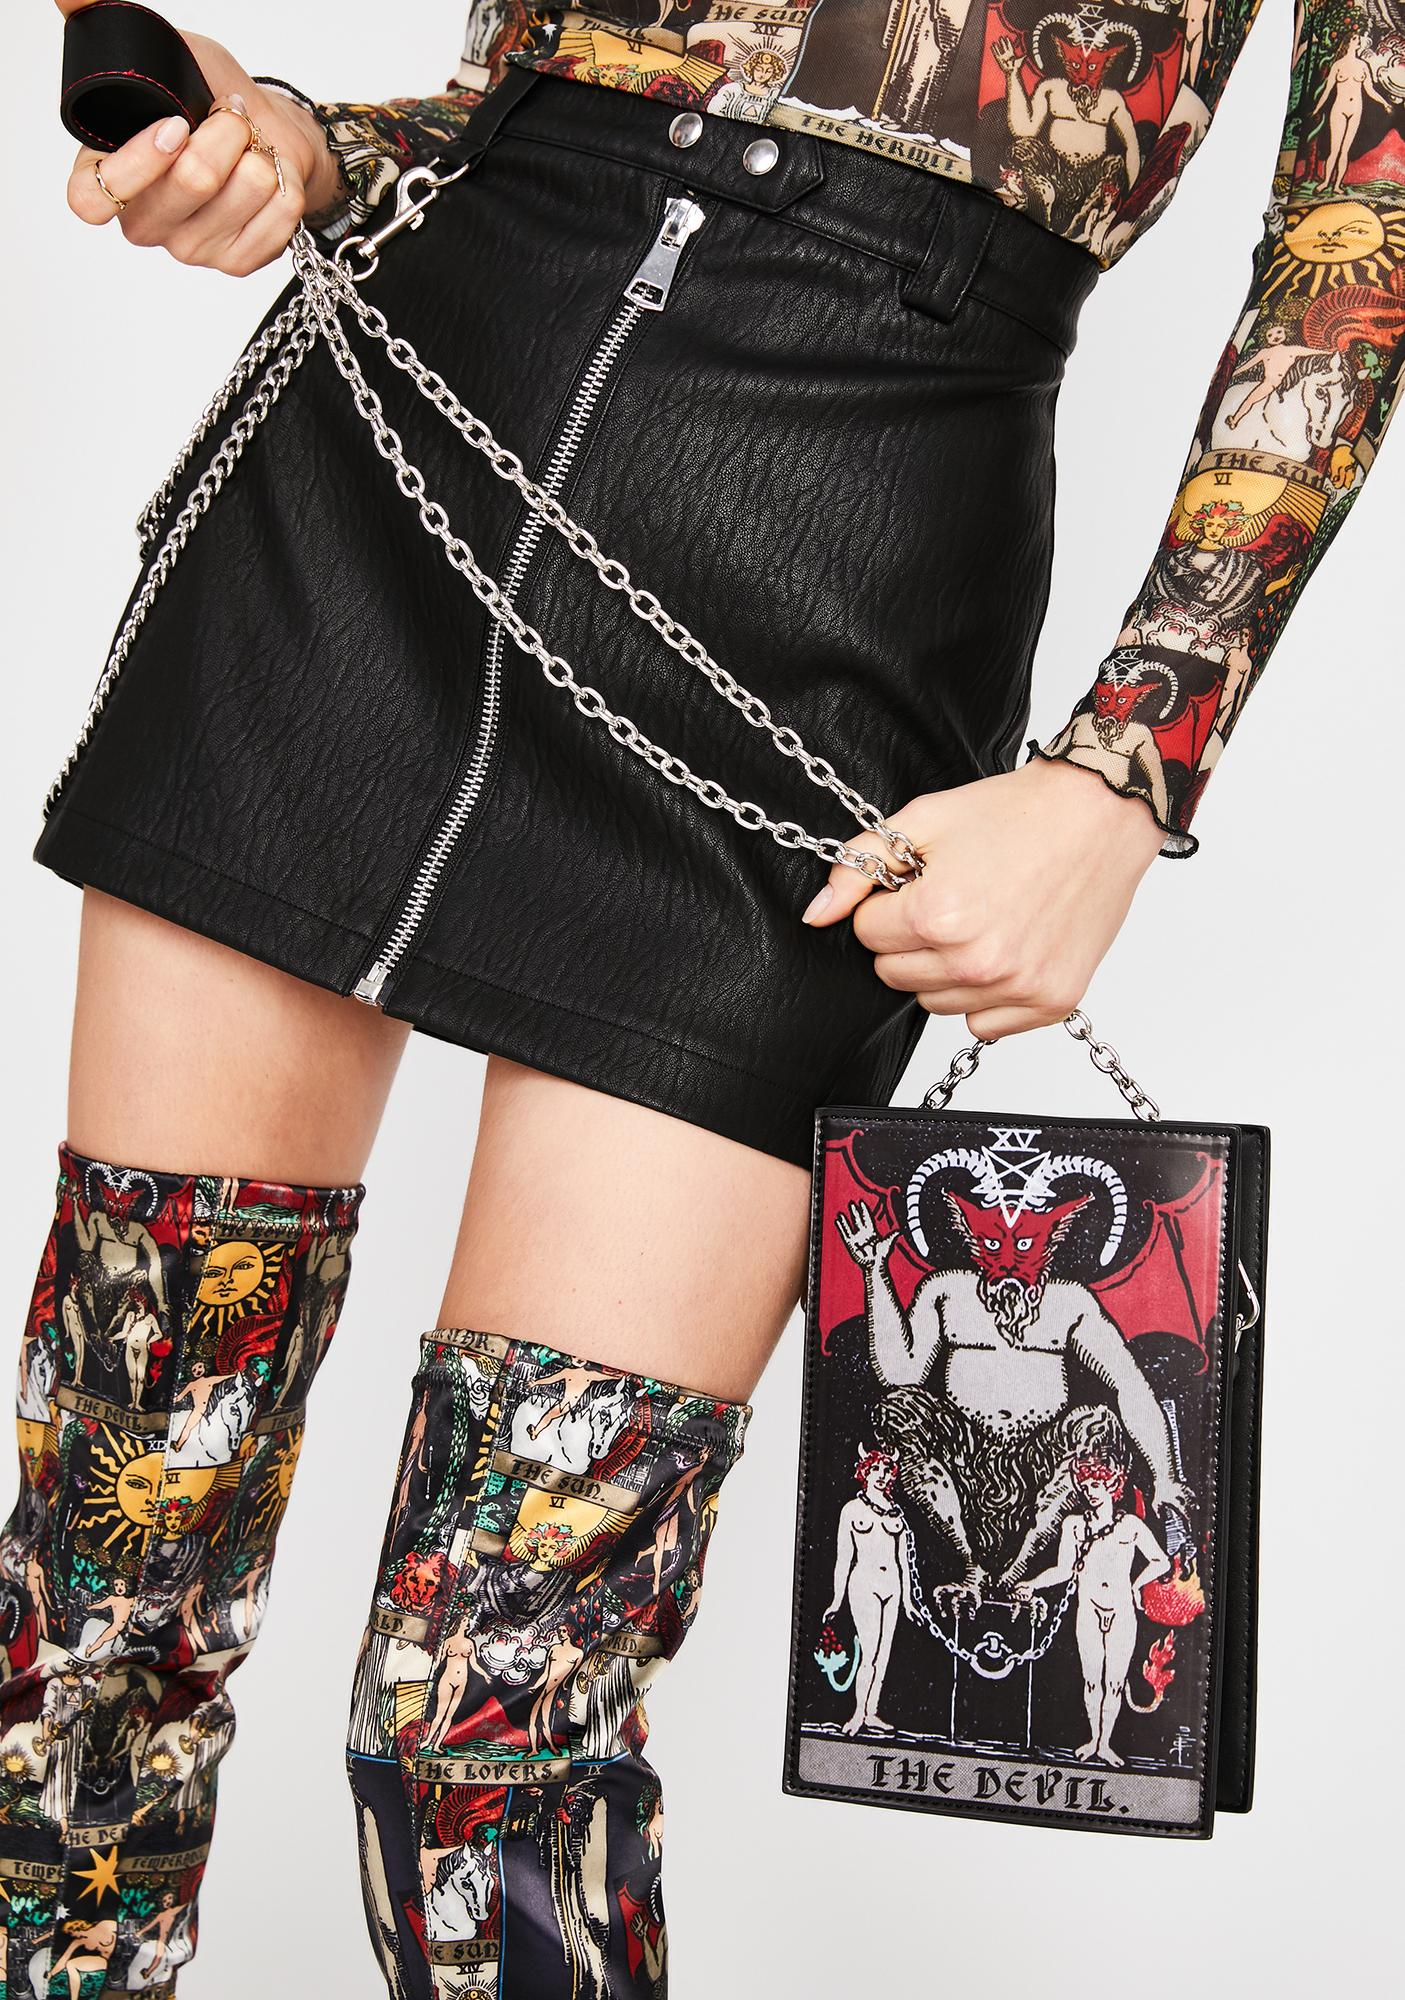 HOROSCOPEZ Sly N' Sinister Crossbody Bag